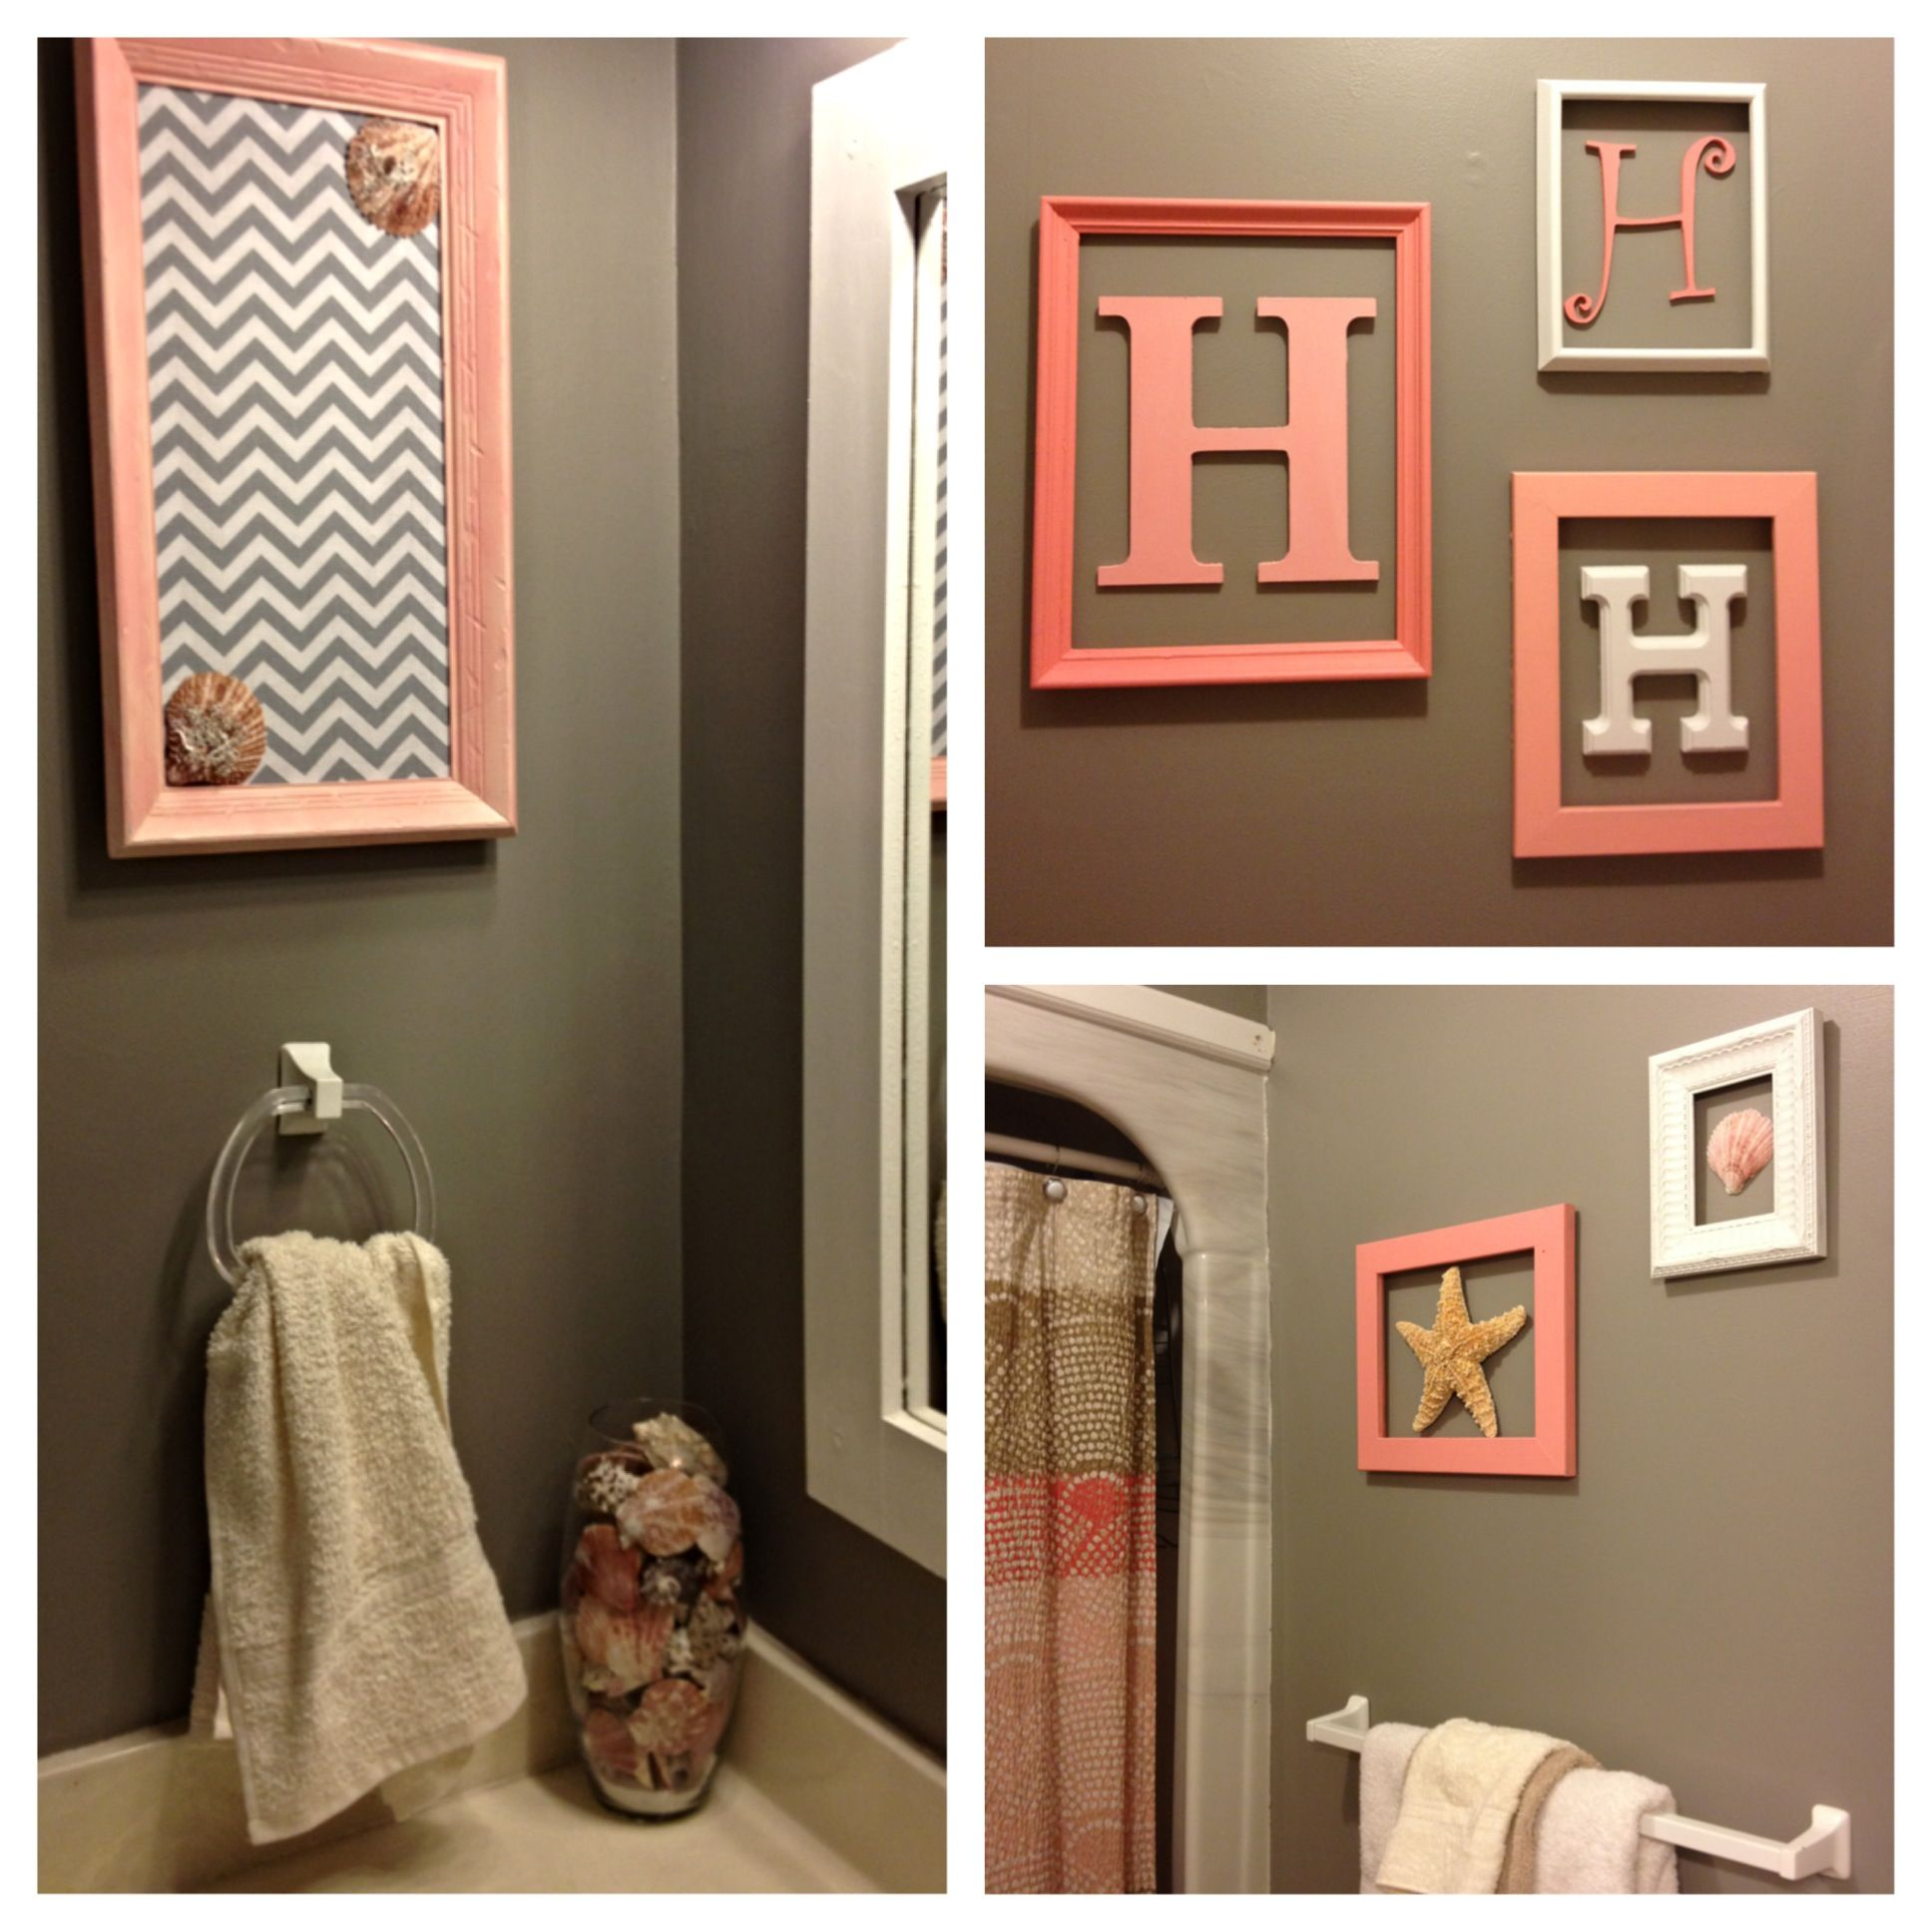 Our new beachy bathroom monogram wall pink tan grey for Pink grey bathroom accessories